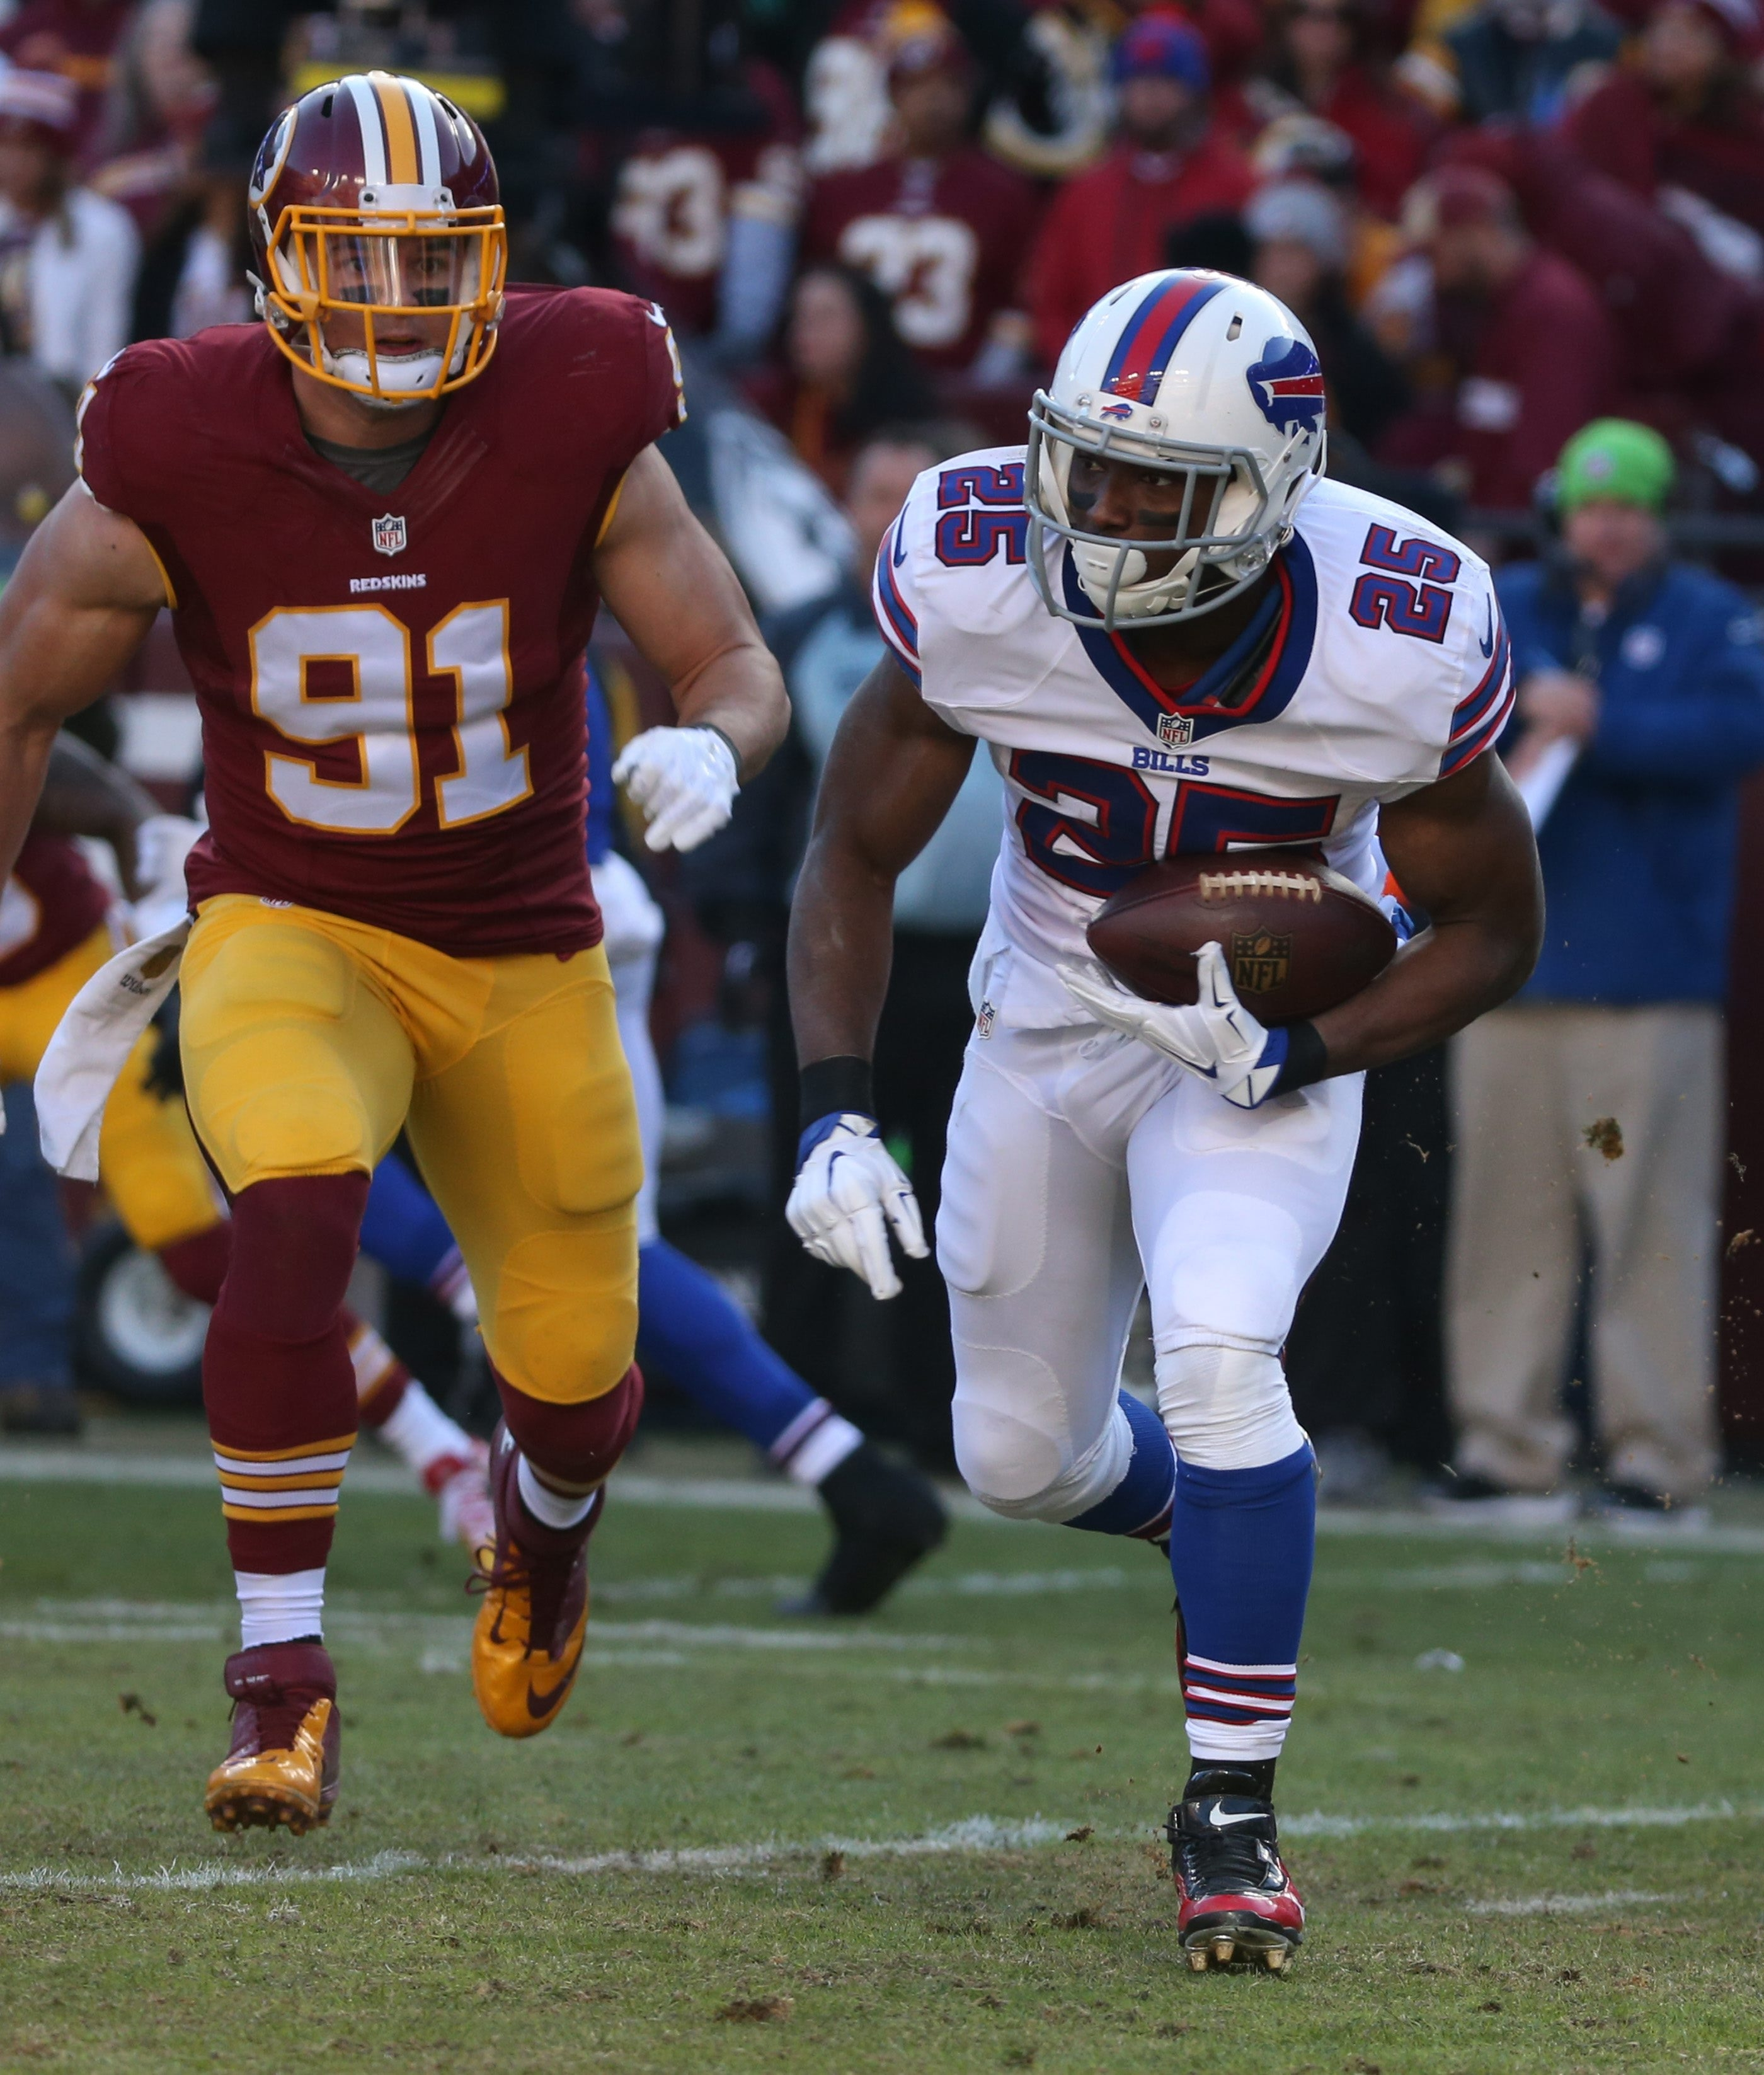 2 lie ncut Buffalo Bills running back LeSean McCoy (25) beats Washington Redskins outside linebacker Ryan Kerrigan (91) in the second quarter at Fed Ex field in Landover, Md on Sunday, Dec. 20, 2015.  (James P. McCoy/ Buffalo News)